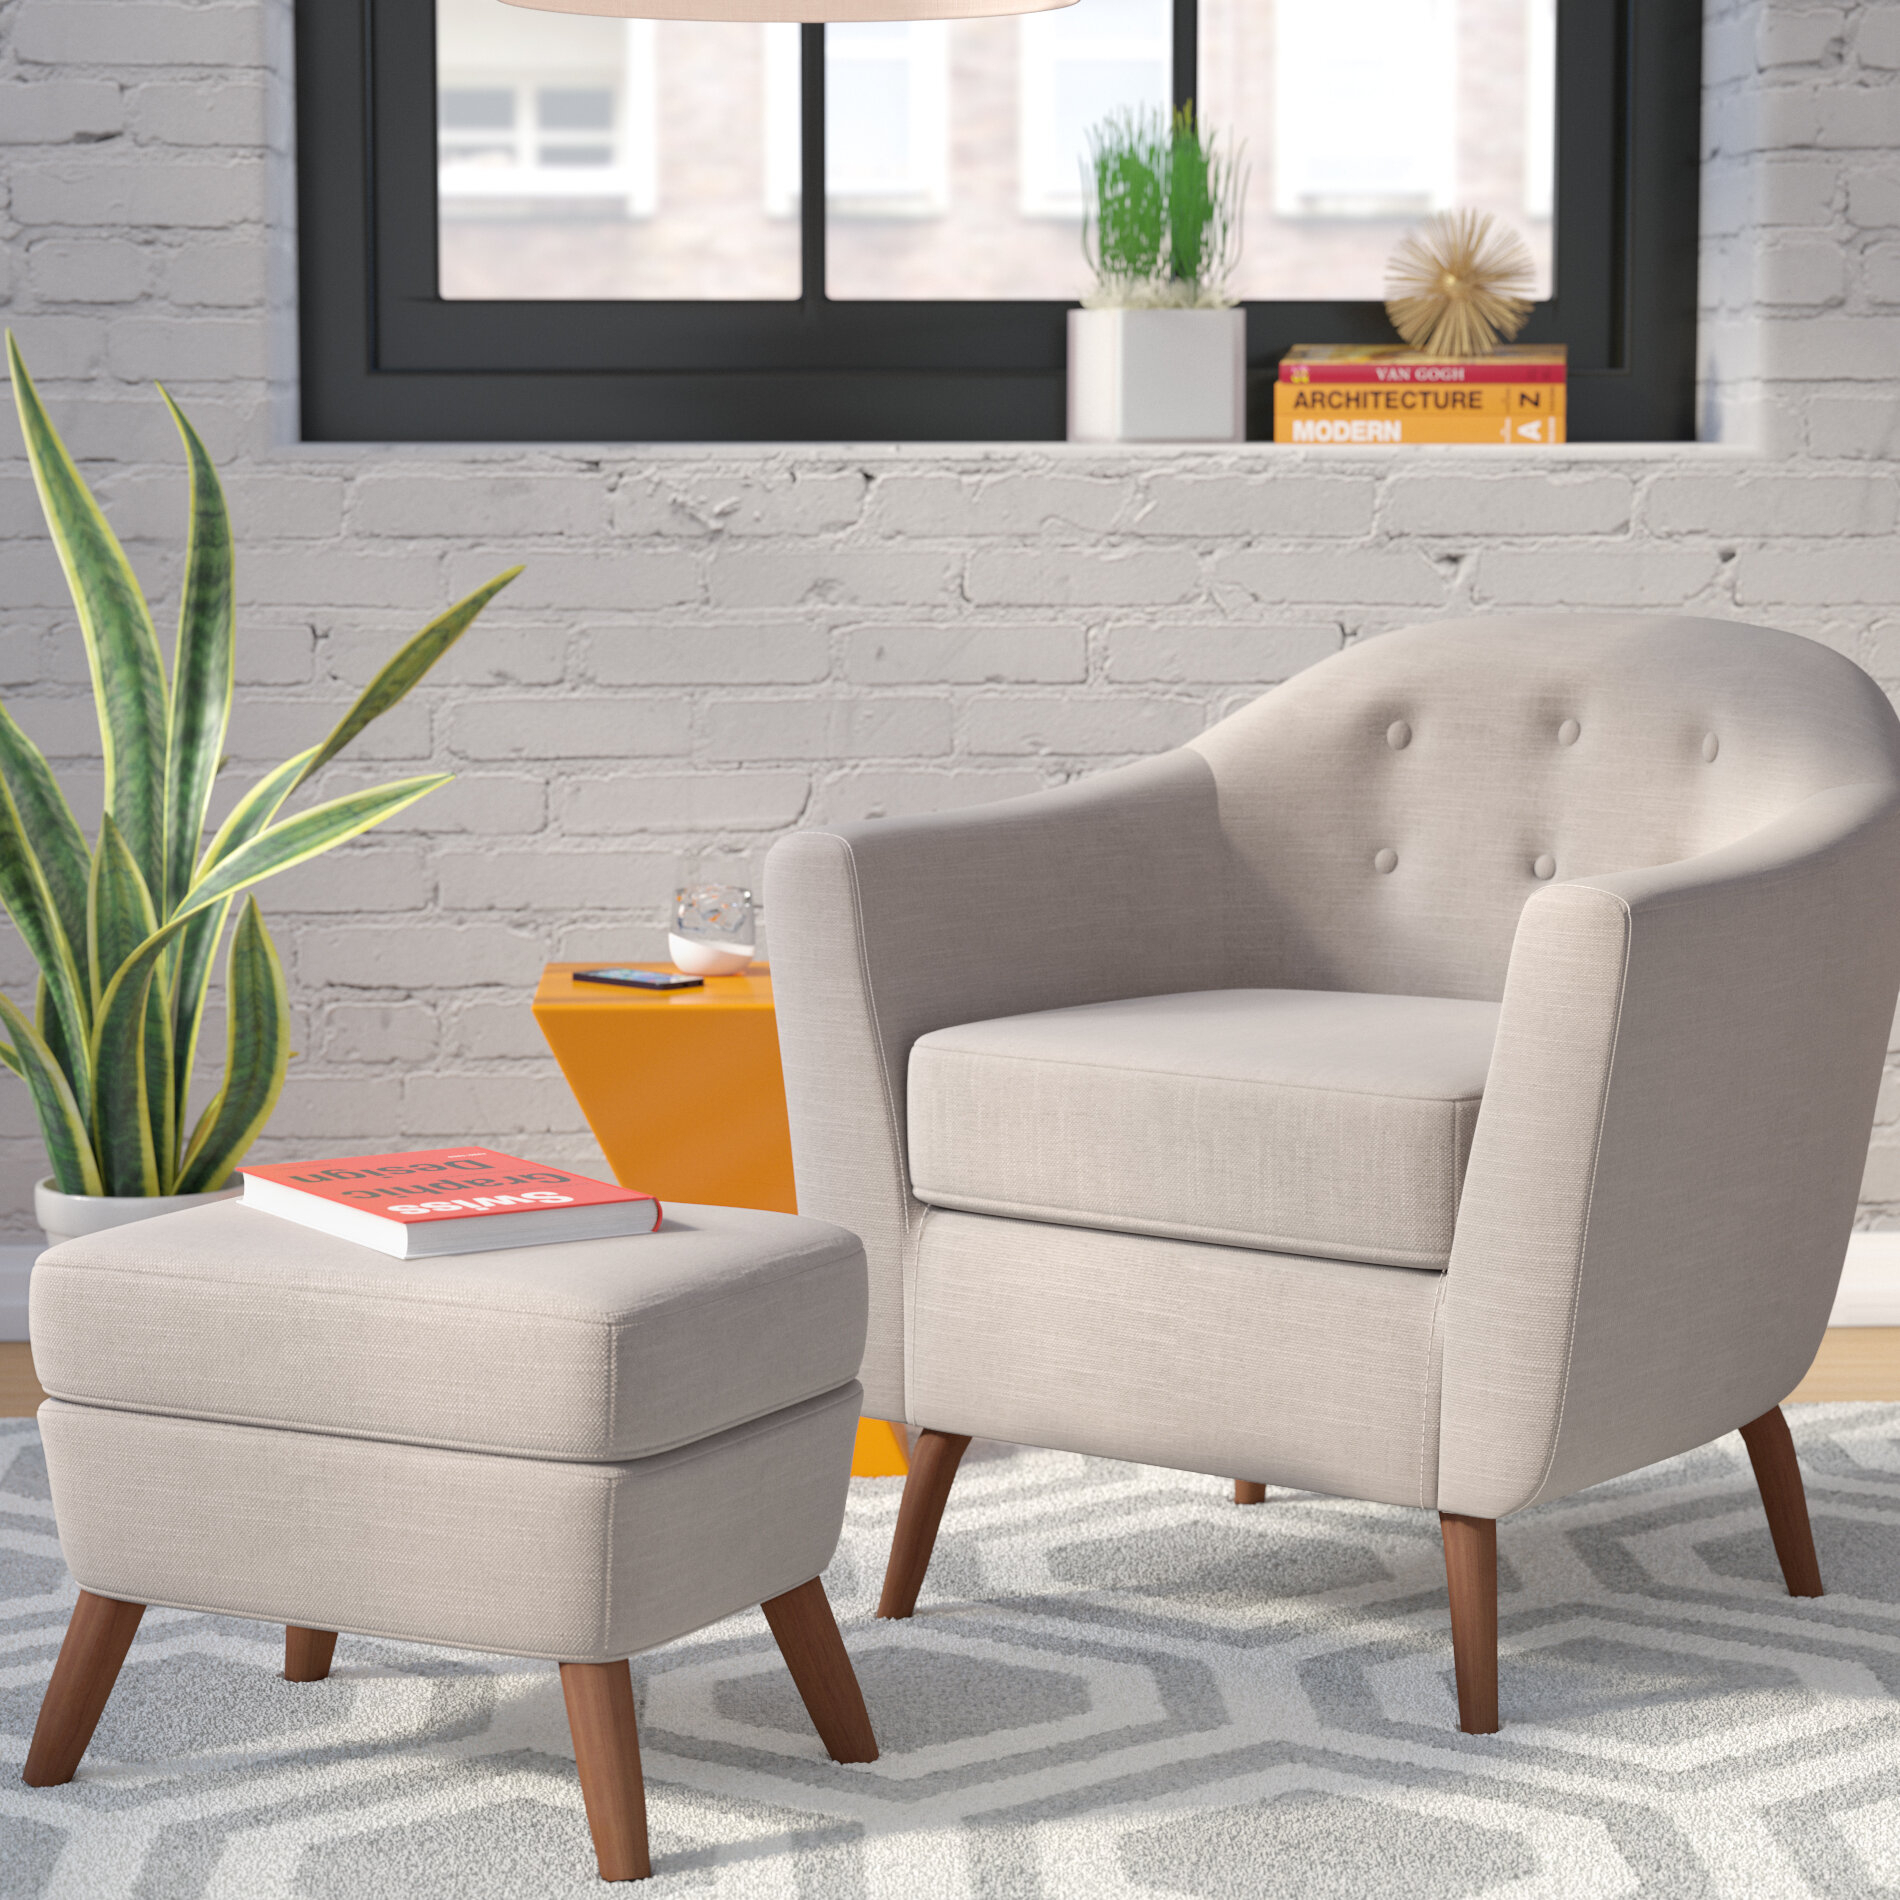 Barrel Scandinavian Accent Chairs You'Ll Love In 2021 | Wayfair Intended For Claudel Polyester Blend Barrel Chairs (View 8 of 15)